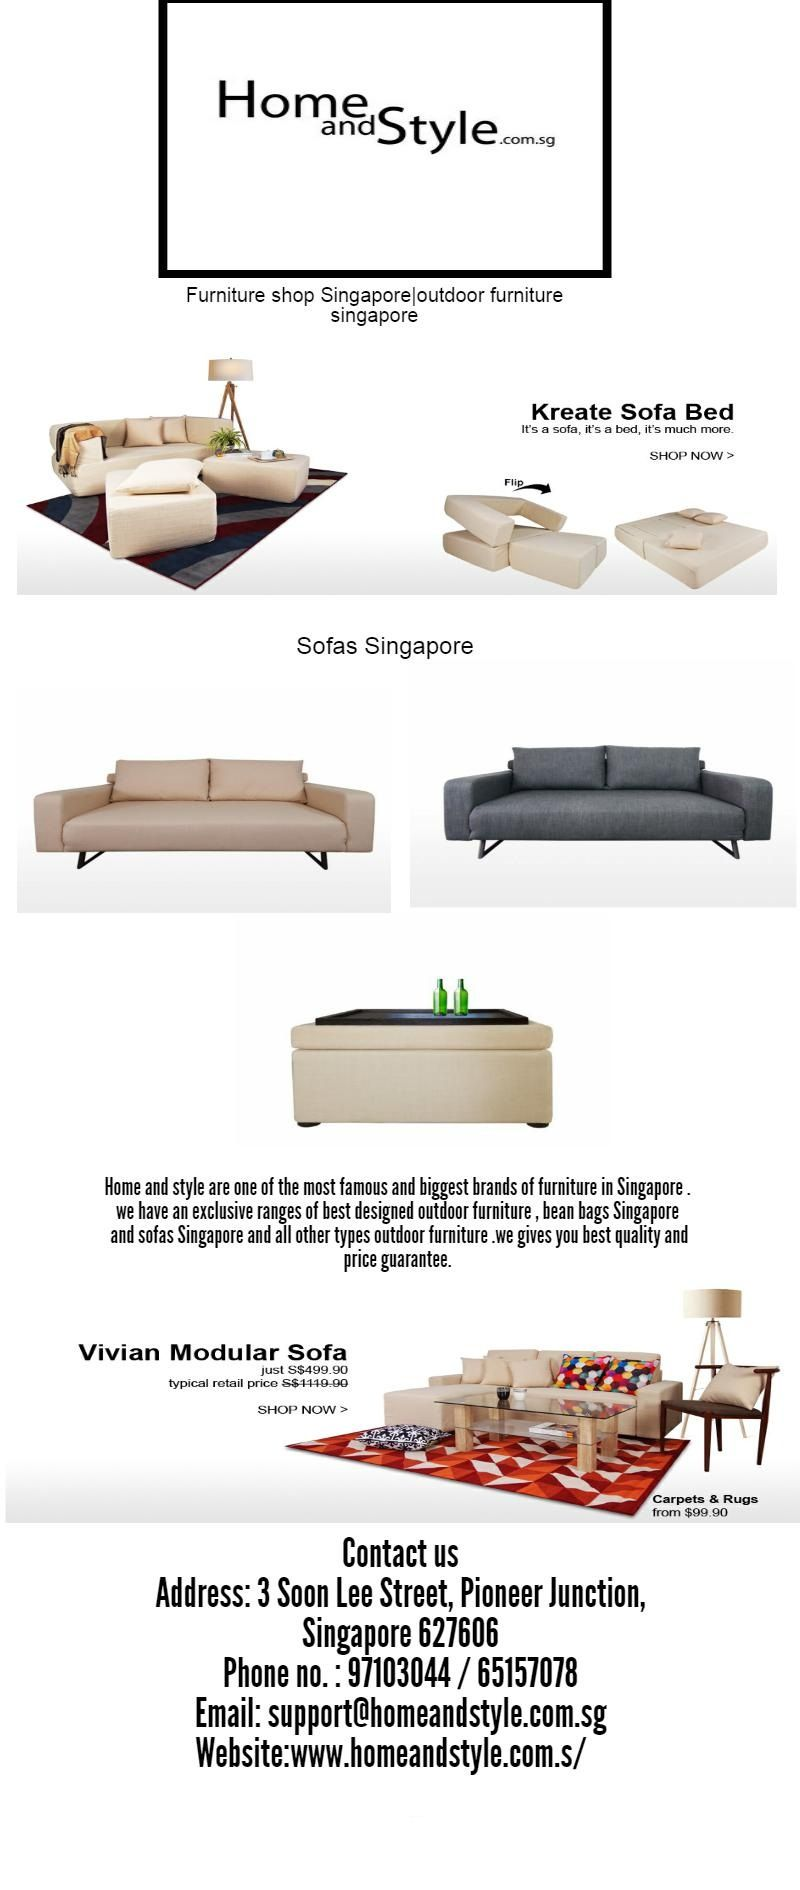 Home And Style Are One Of The Most Famous And Biggest Brands Of Furniture In Singapore We Have An Exclusive Ranges Of Best Desig Sofa Furniture Shop Sofa Bed